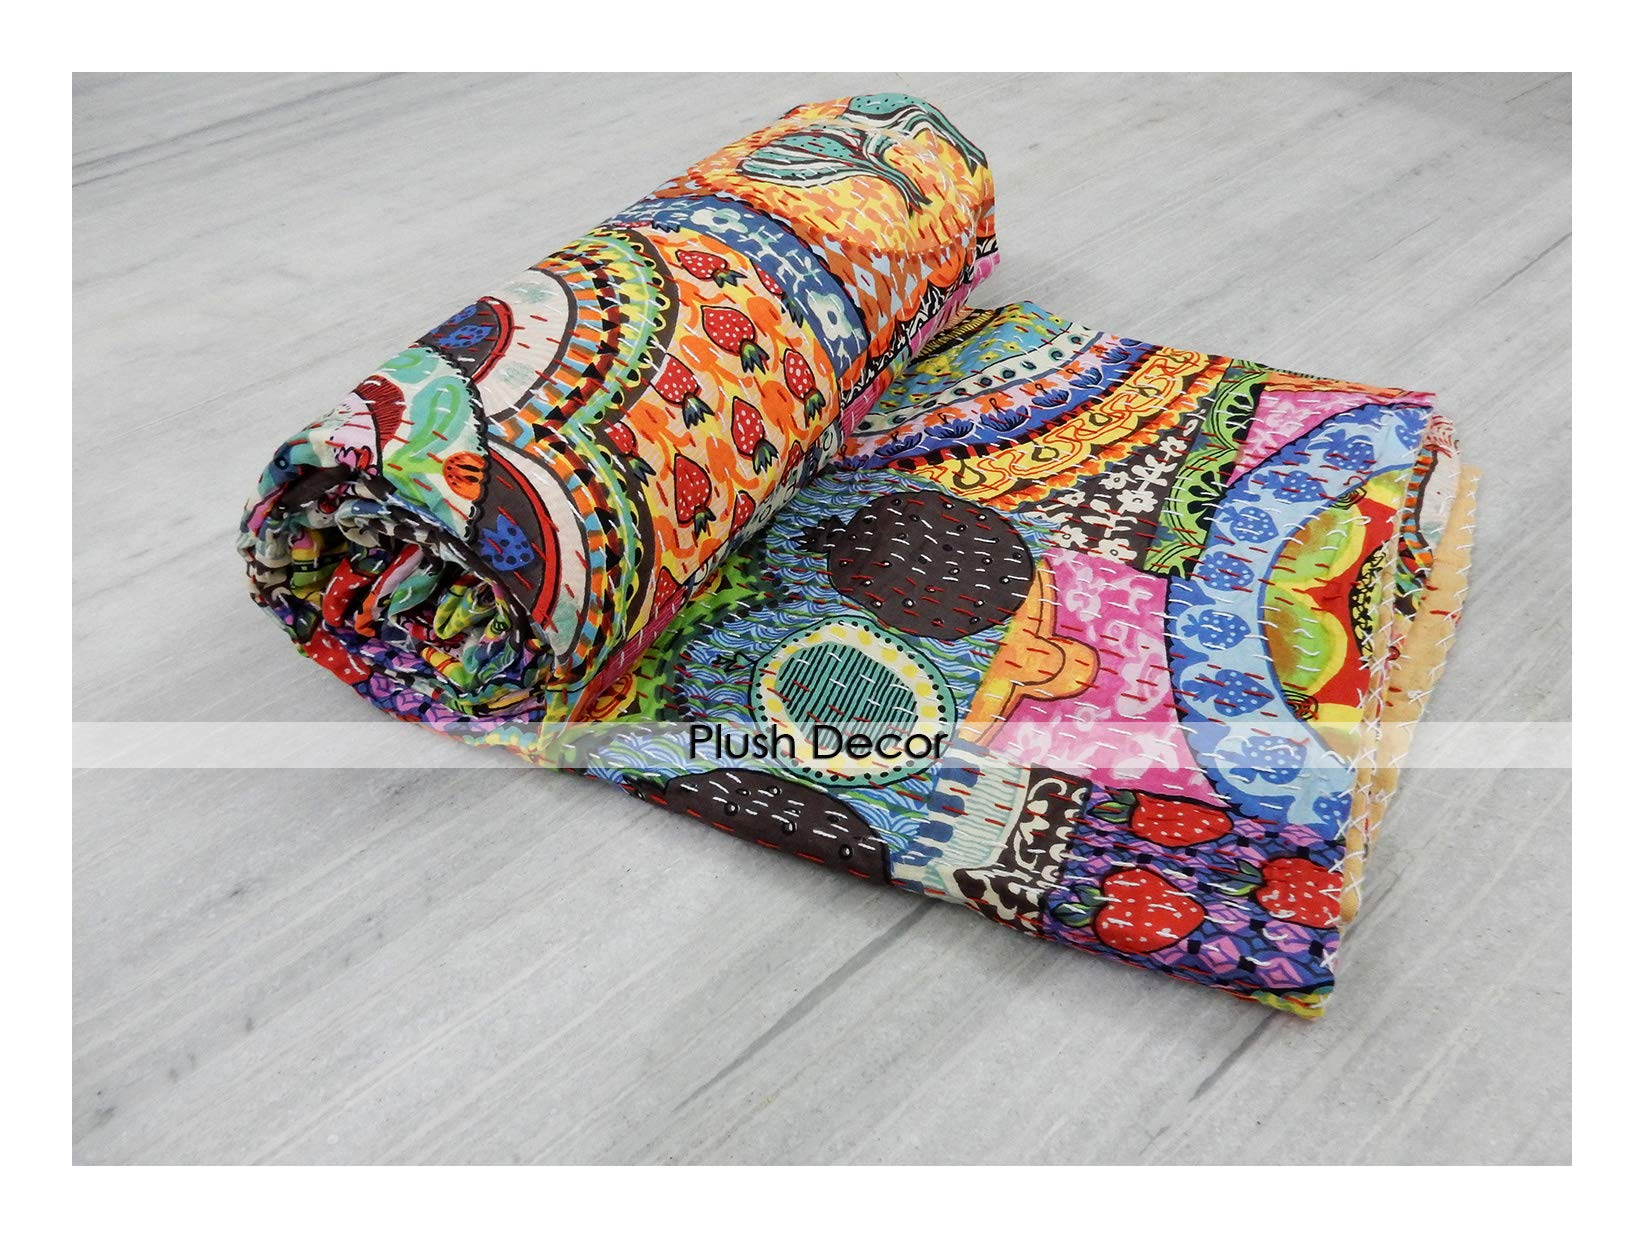 Plush Decor Indian Reversible Patchwork Kantha Quilt Bohemian Baby Bedding Vintage Blanket Throw Twin Bedspread